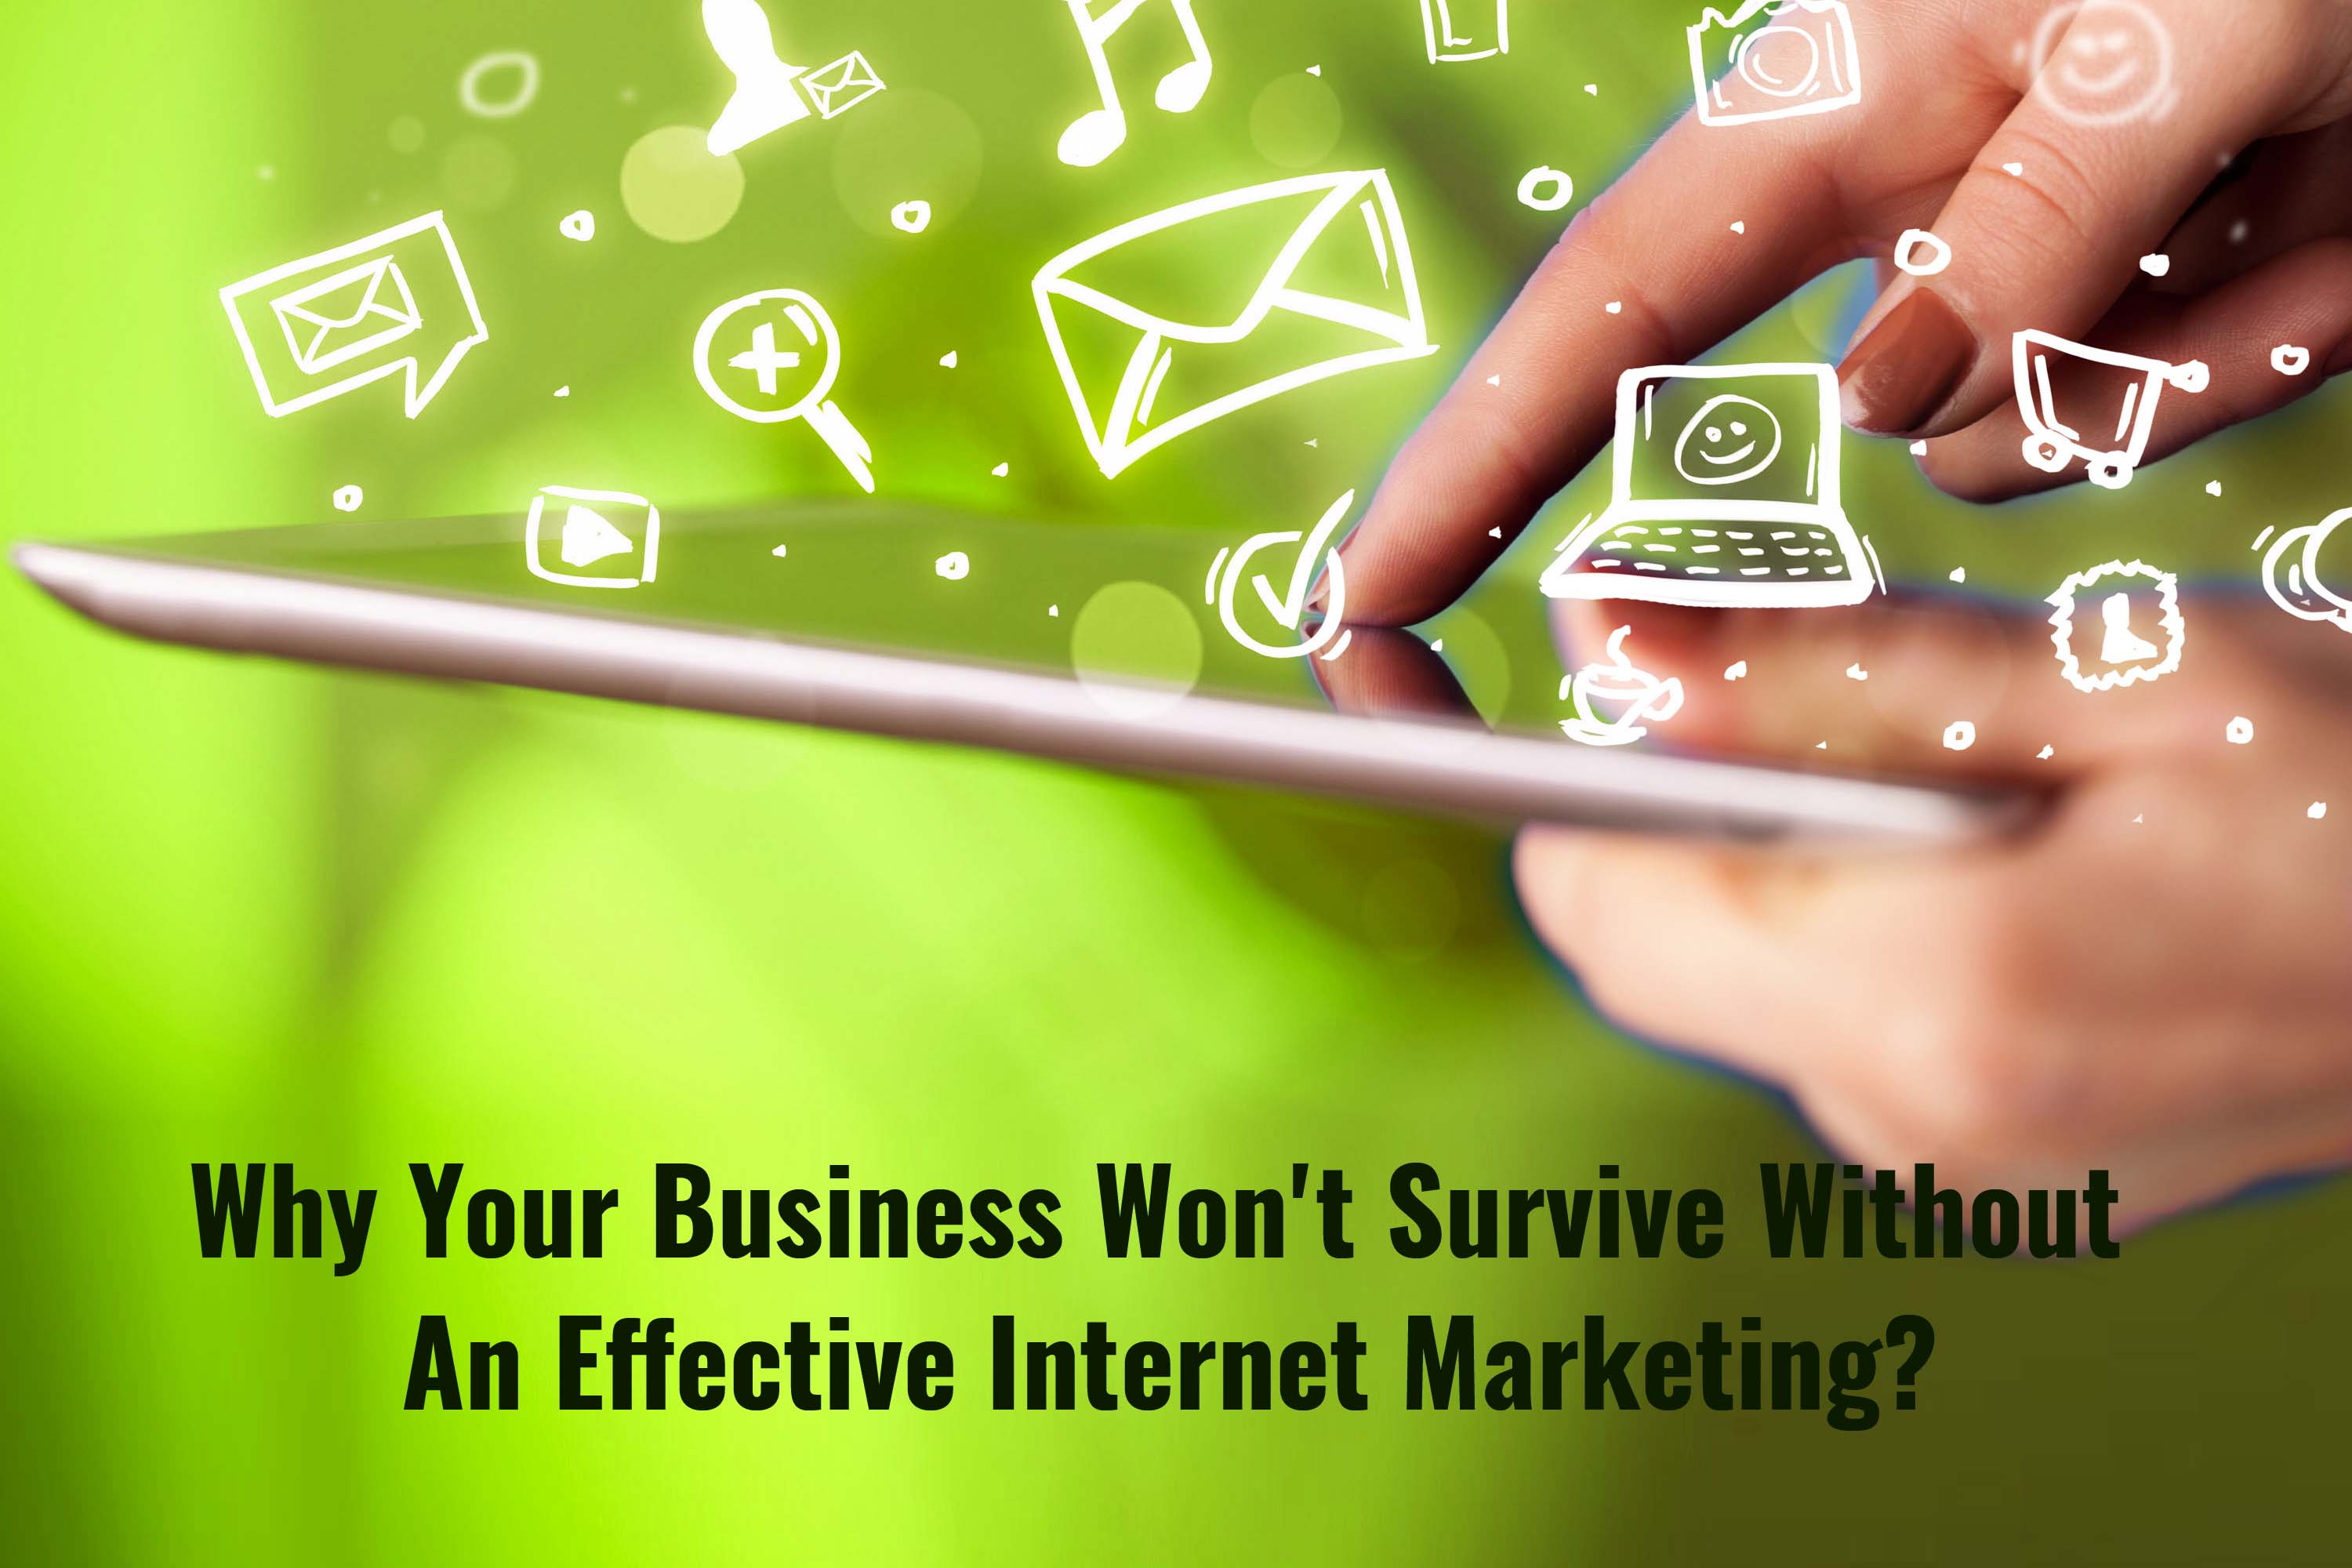 Why Your Business Won't Survive Without An Effective Internet Marketing?